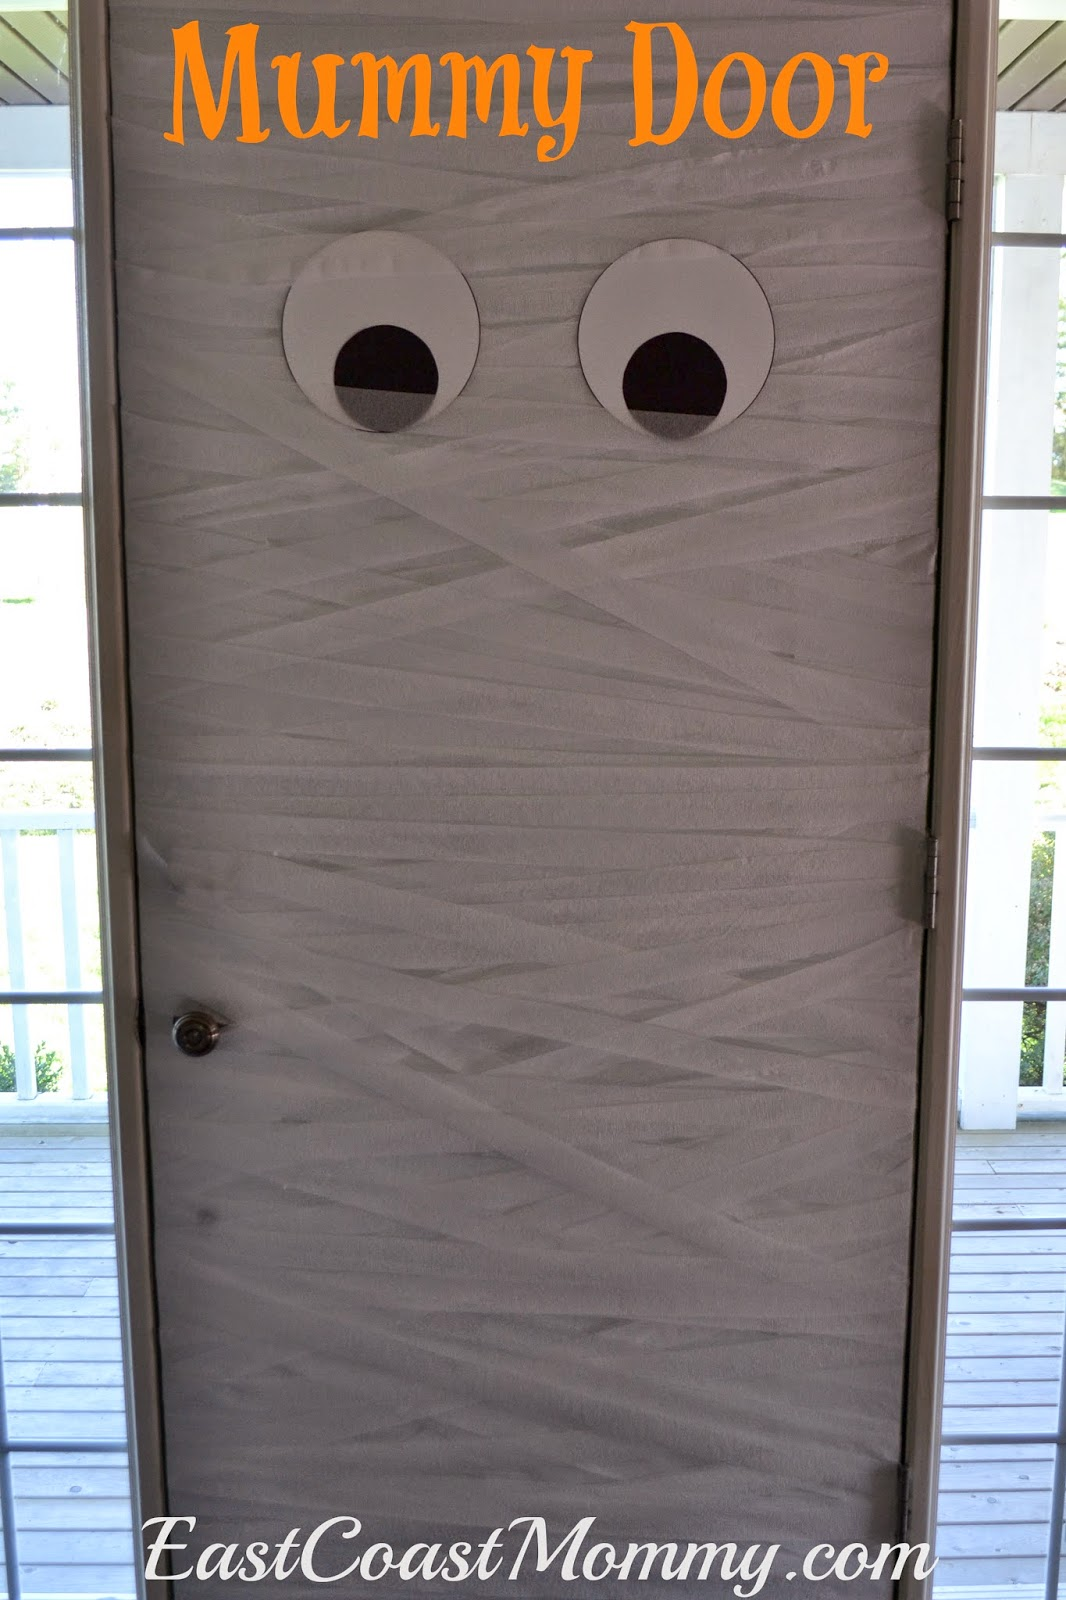 For Christmas we turned our door into a snowman and for Easter we transformed it into a bunny. So... for Halloween we decided to create a Mummy Door! & East Coast Mommy: Mummy Door